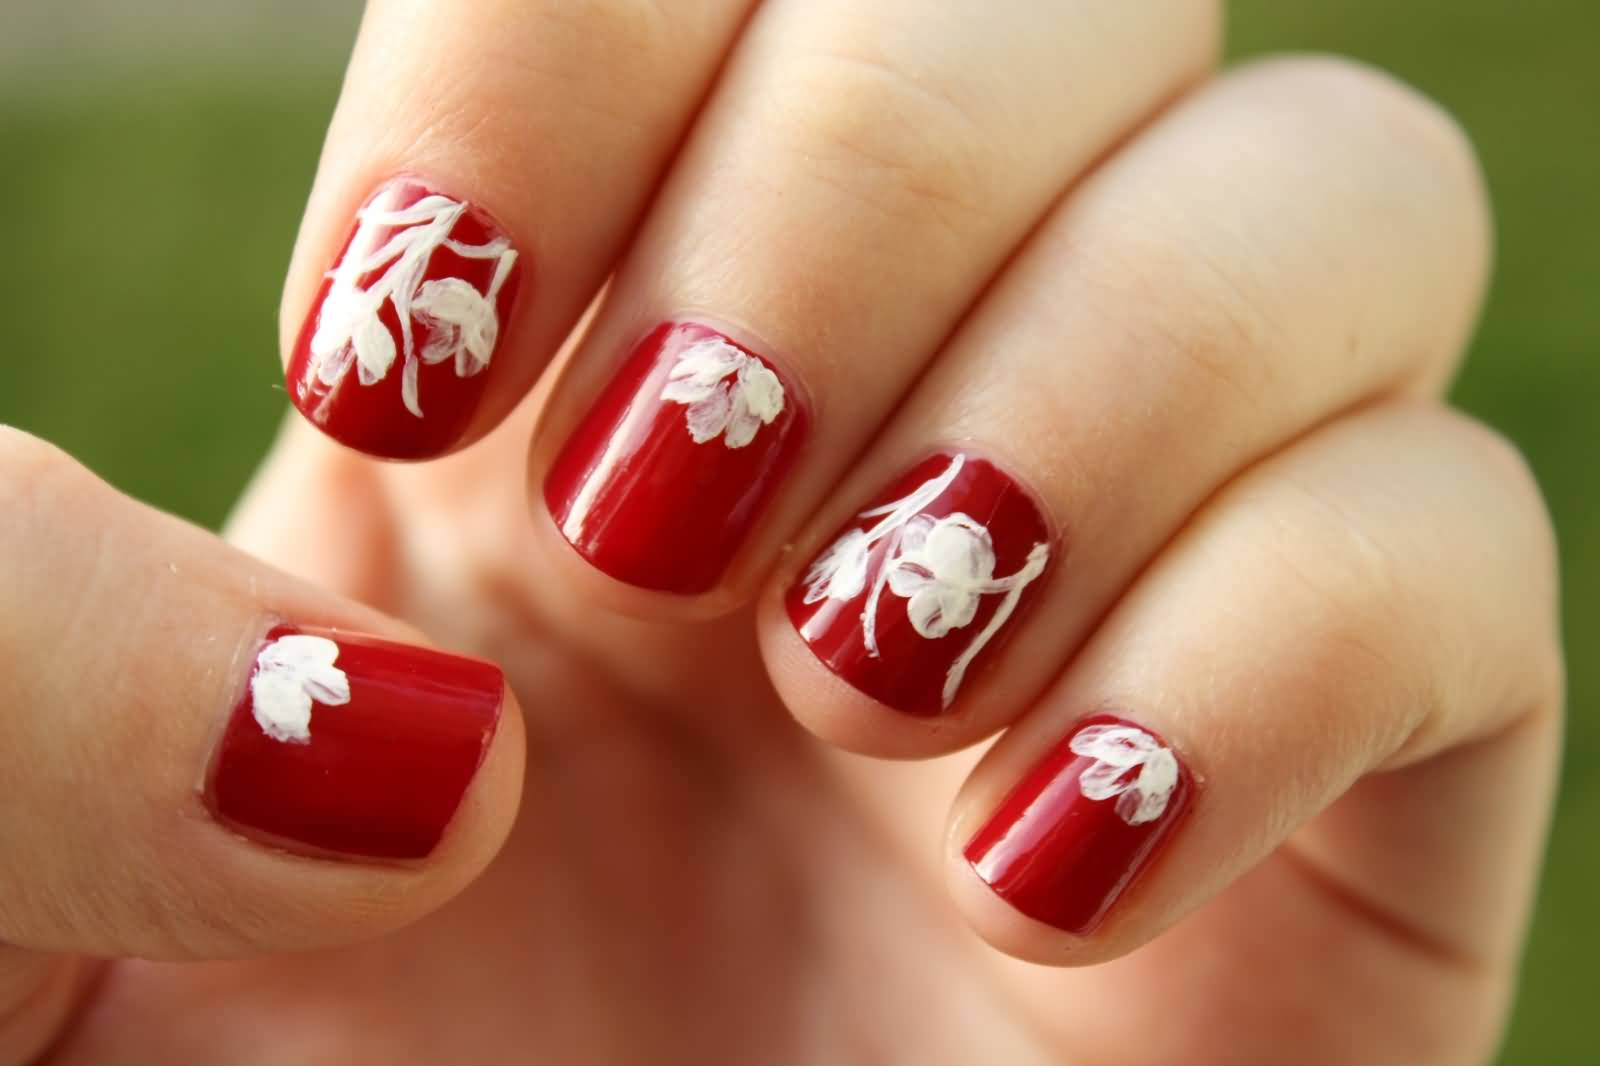 Red Short Nails And White Flowers Nail Art